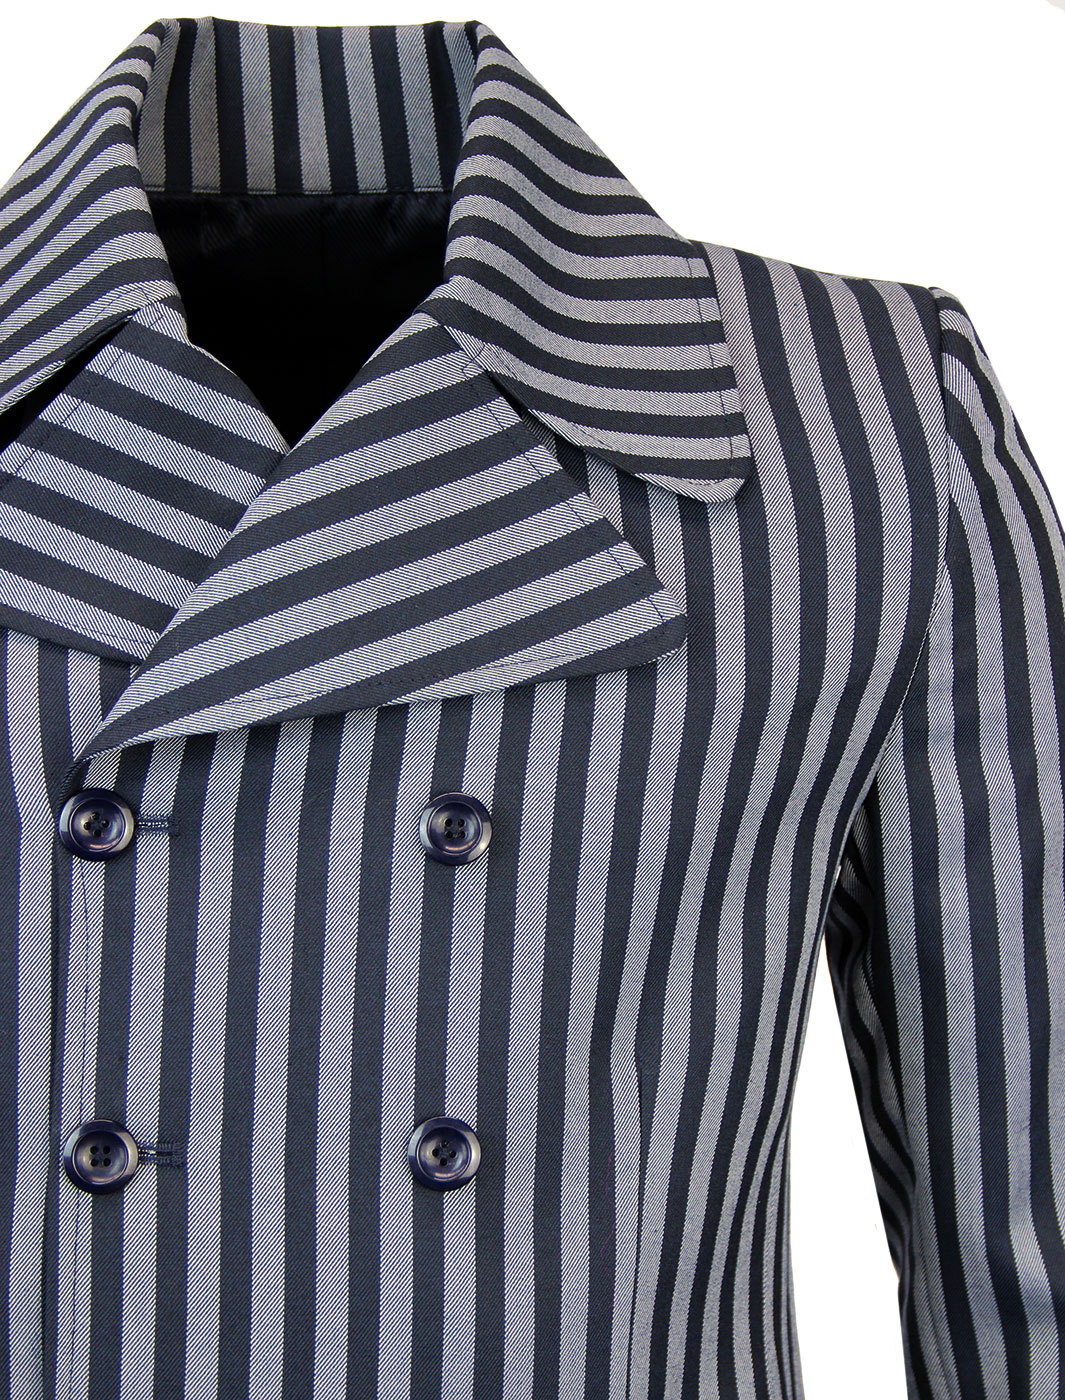 NEW MAPCAP ENGLAND HOWL DOUBLE BREASTED BOATING BLAZER SILVER//NAVY MC282